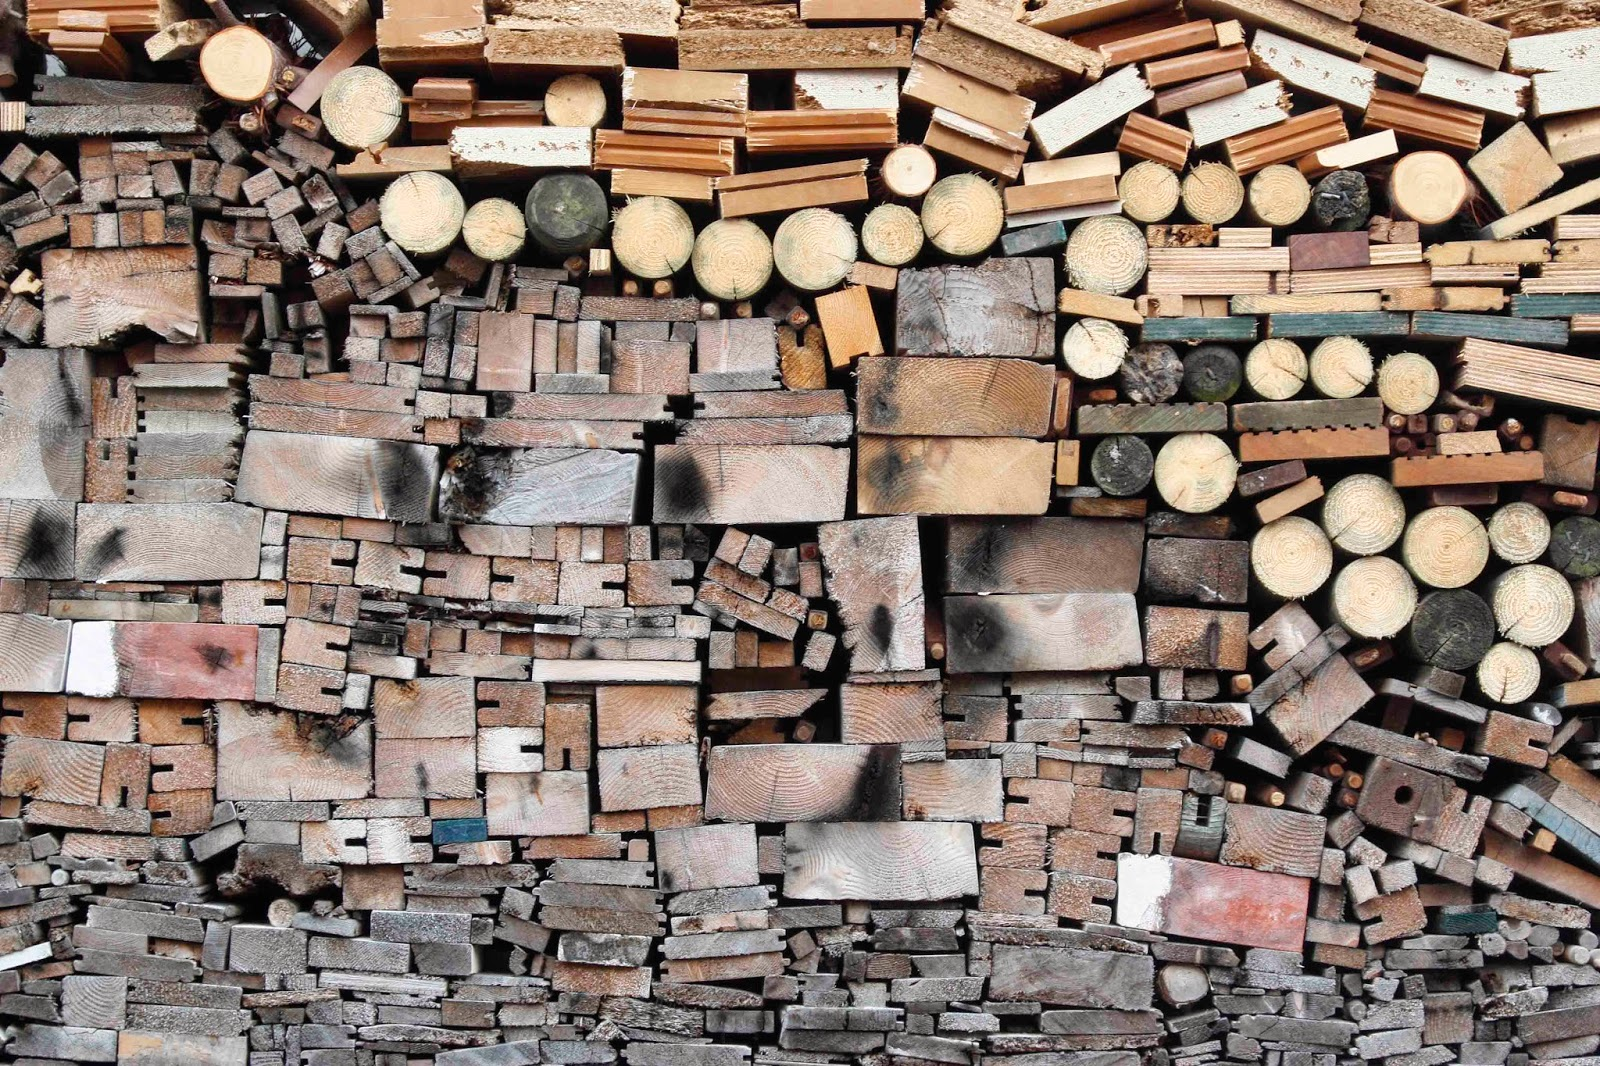 piled up wood